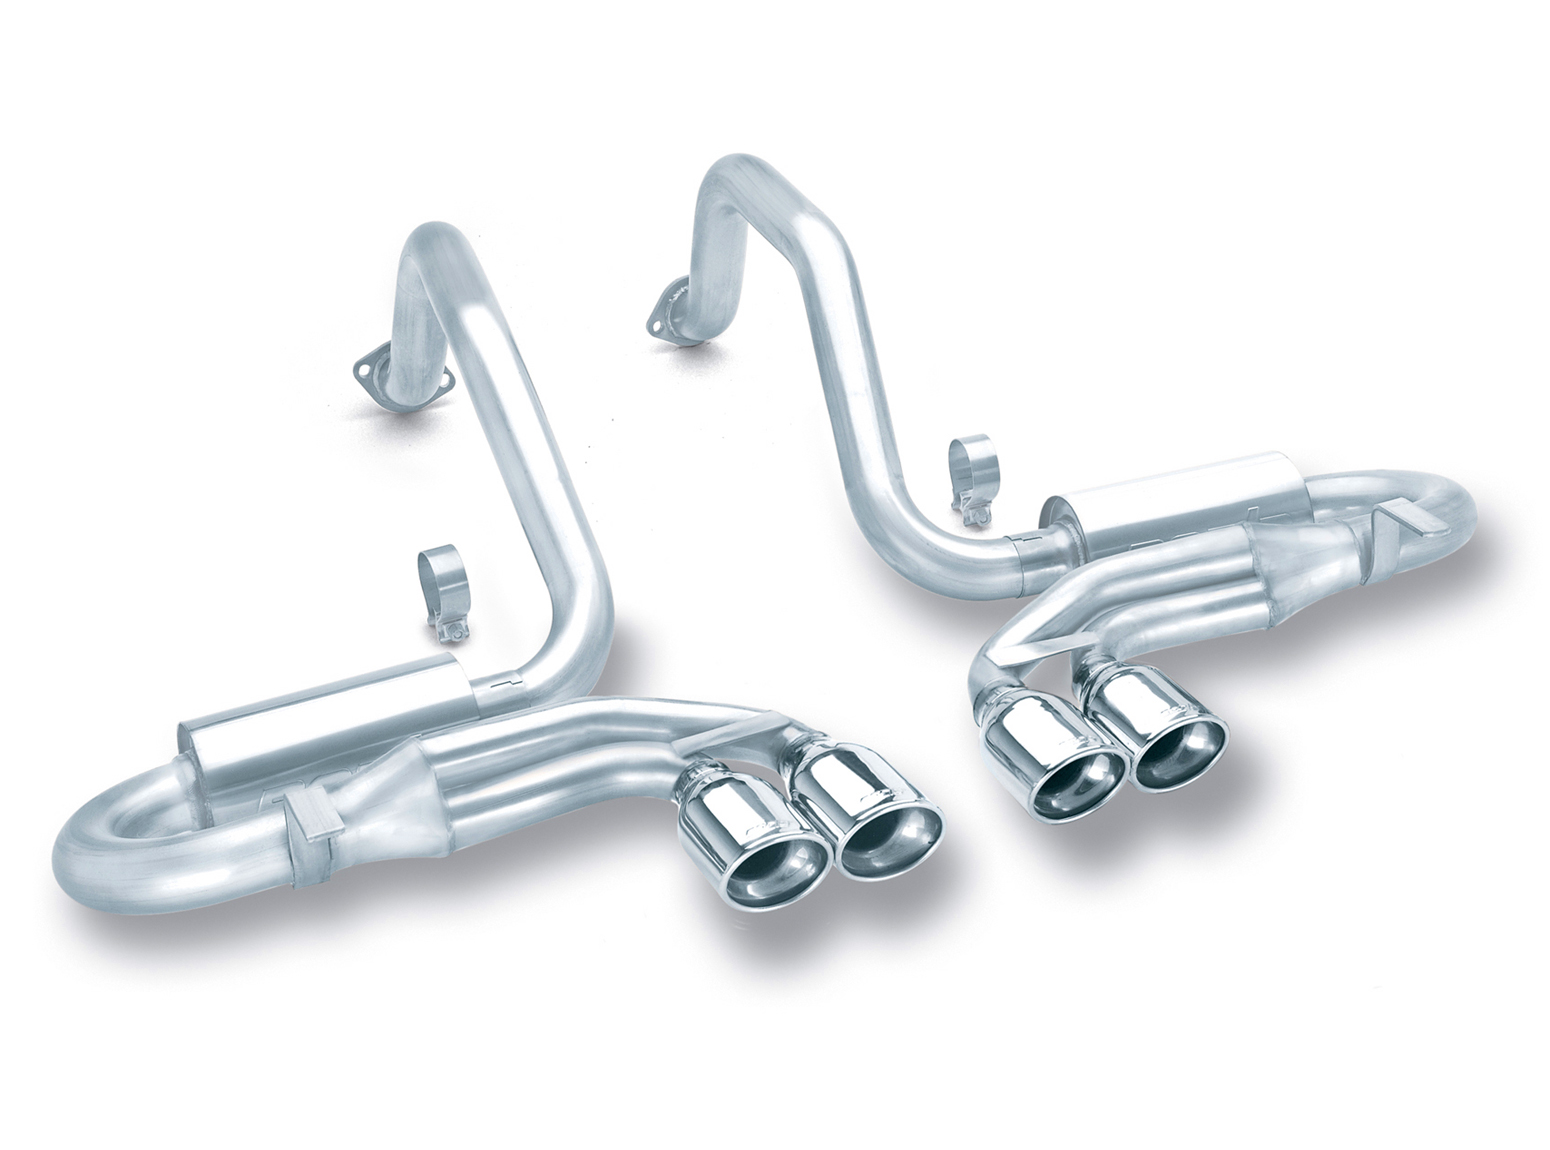 "Chevrolet Corvette C5/Z06 5.7l V8 1997-2004 Borla 2.5"", 2"" Cat-Back Exhaust System ""s-Type"" - Dual Oval Rolled Angle-Cut"